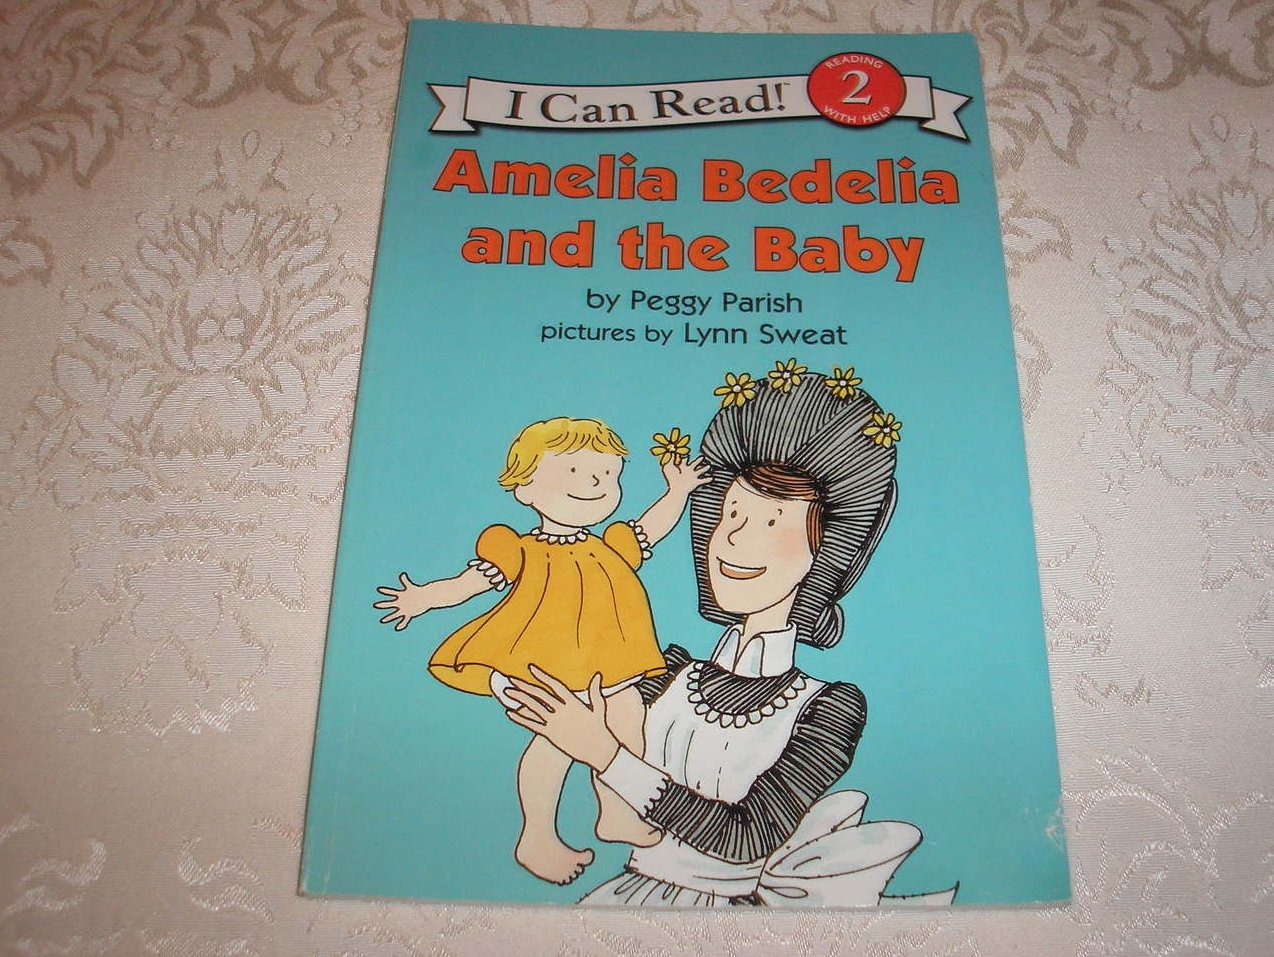 Amelia Bedelia and the Baby Peggy Parish good clean level 2 reader